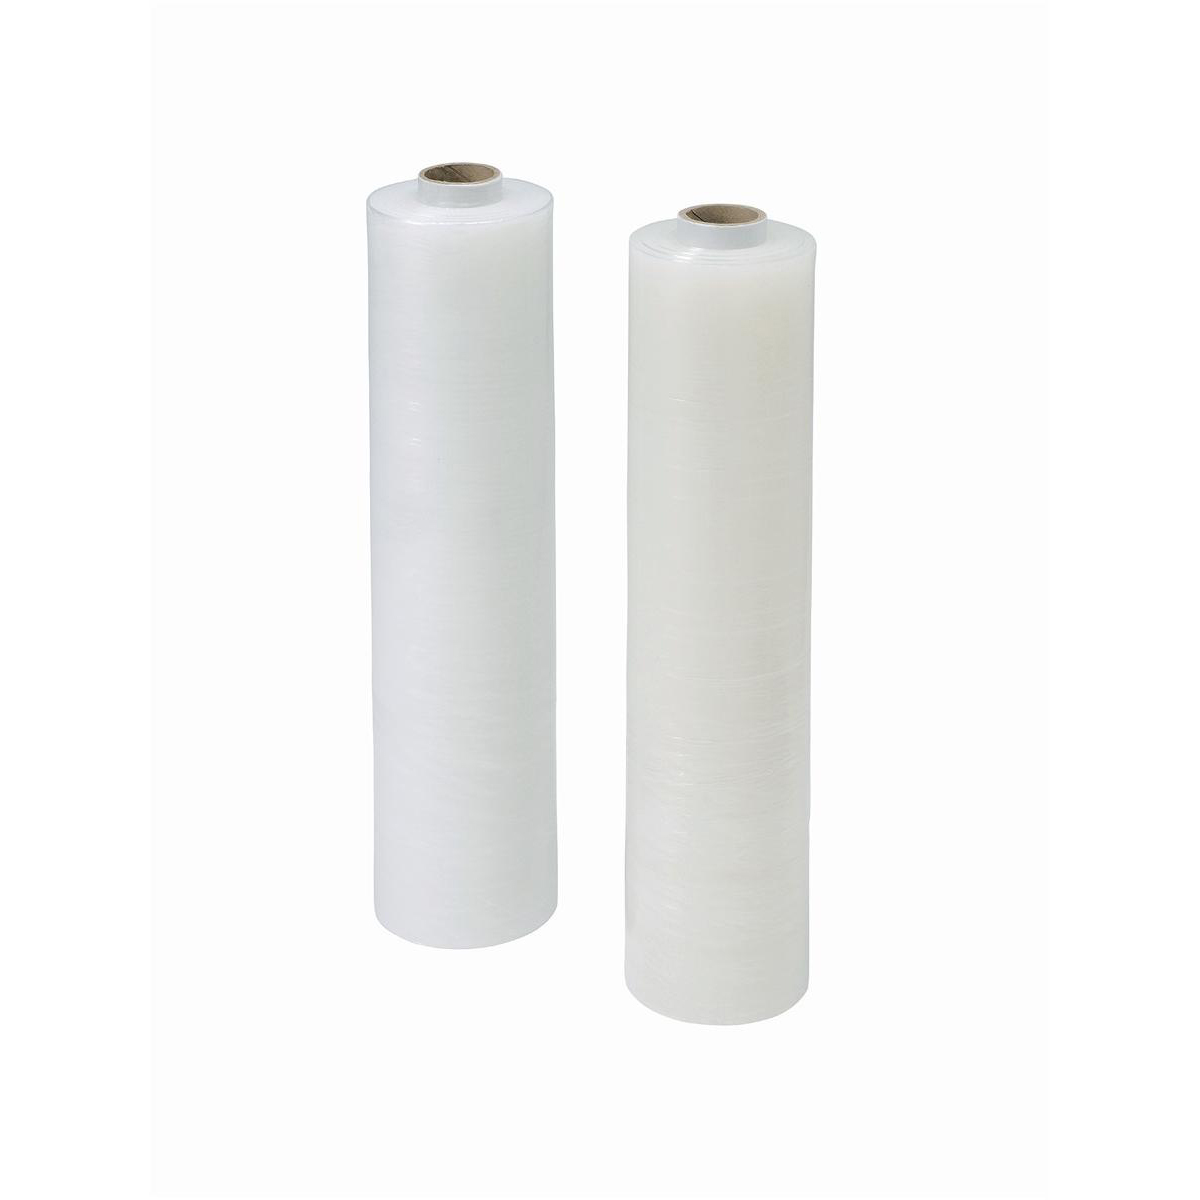 Stretch Film Blown 34 micron 400mmx200m Clear Pack 6